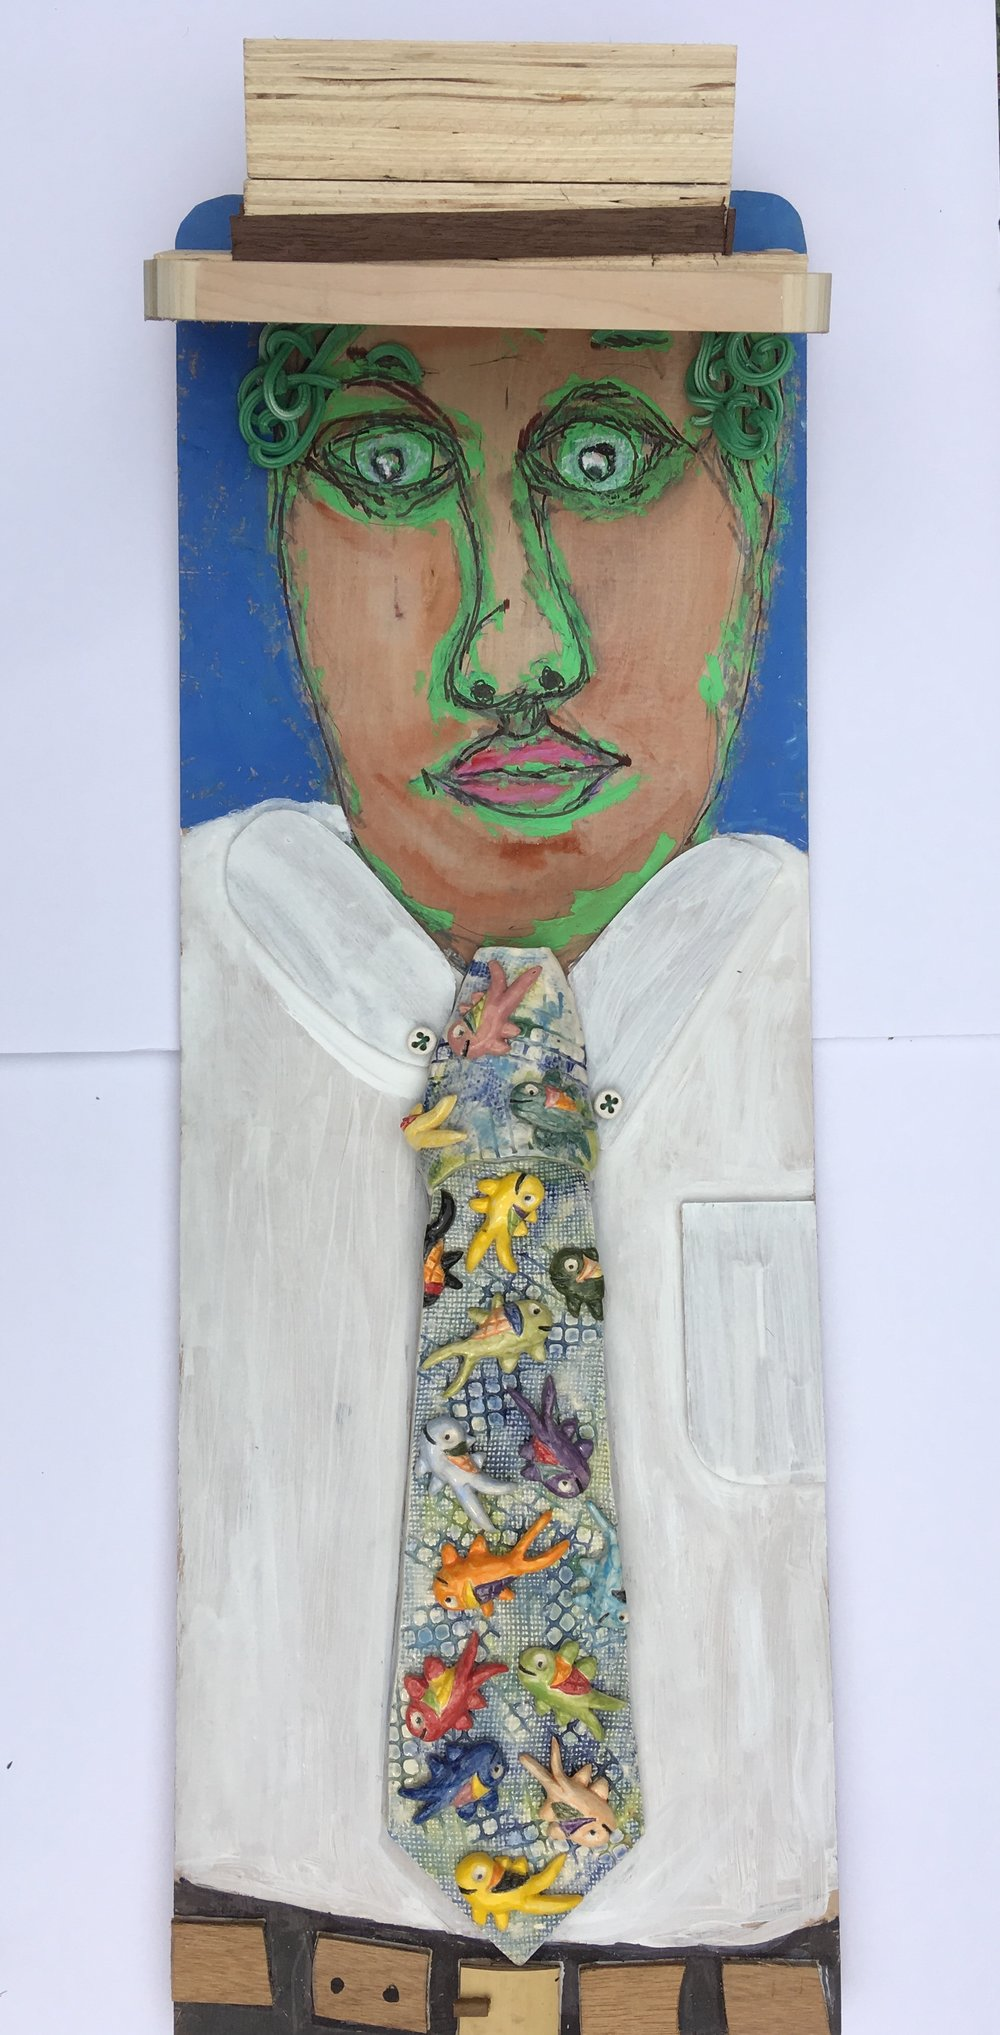 Kasse Andrews-Weller and Micheal Green_Man With Fish Tie.jpg